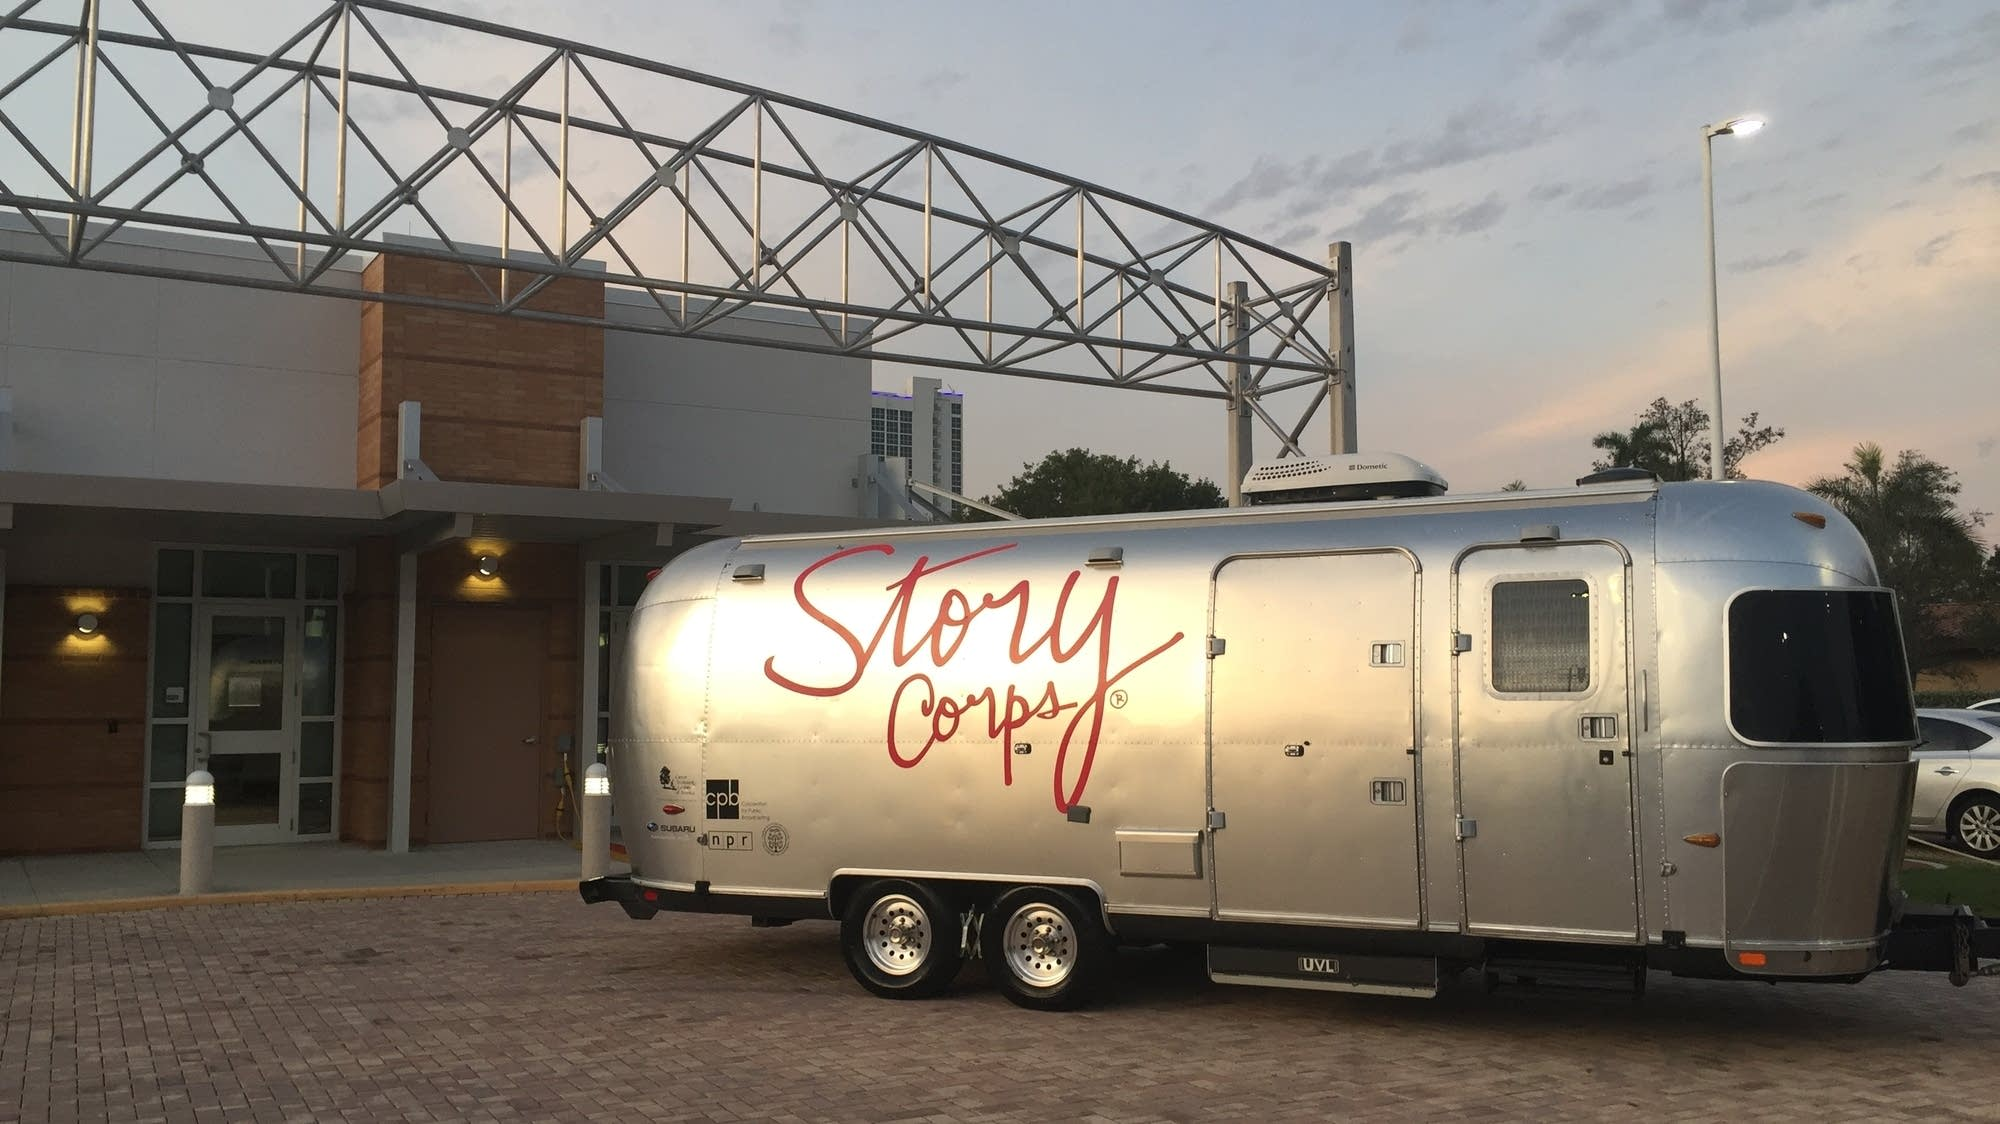 MPR 50 StoryCorps Residency